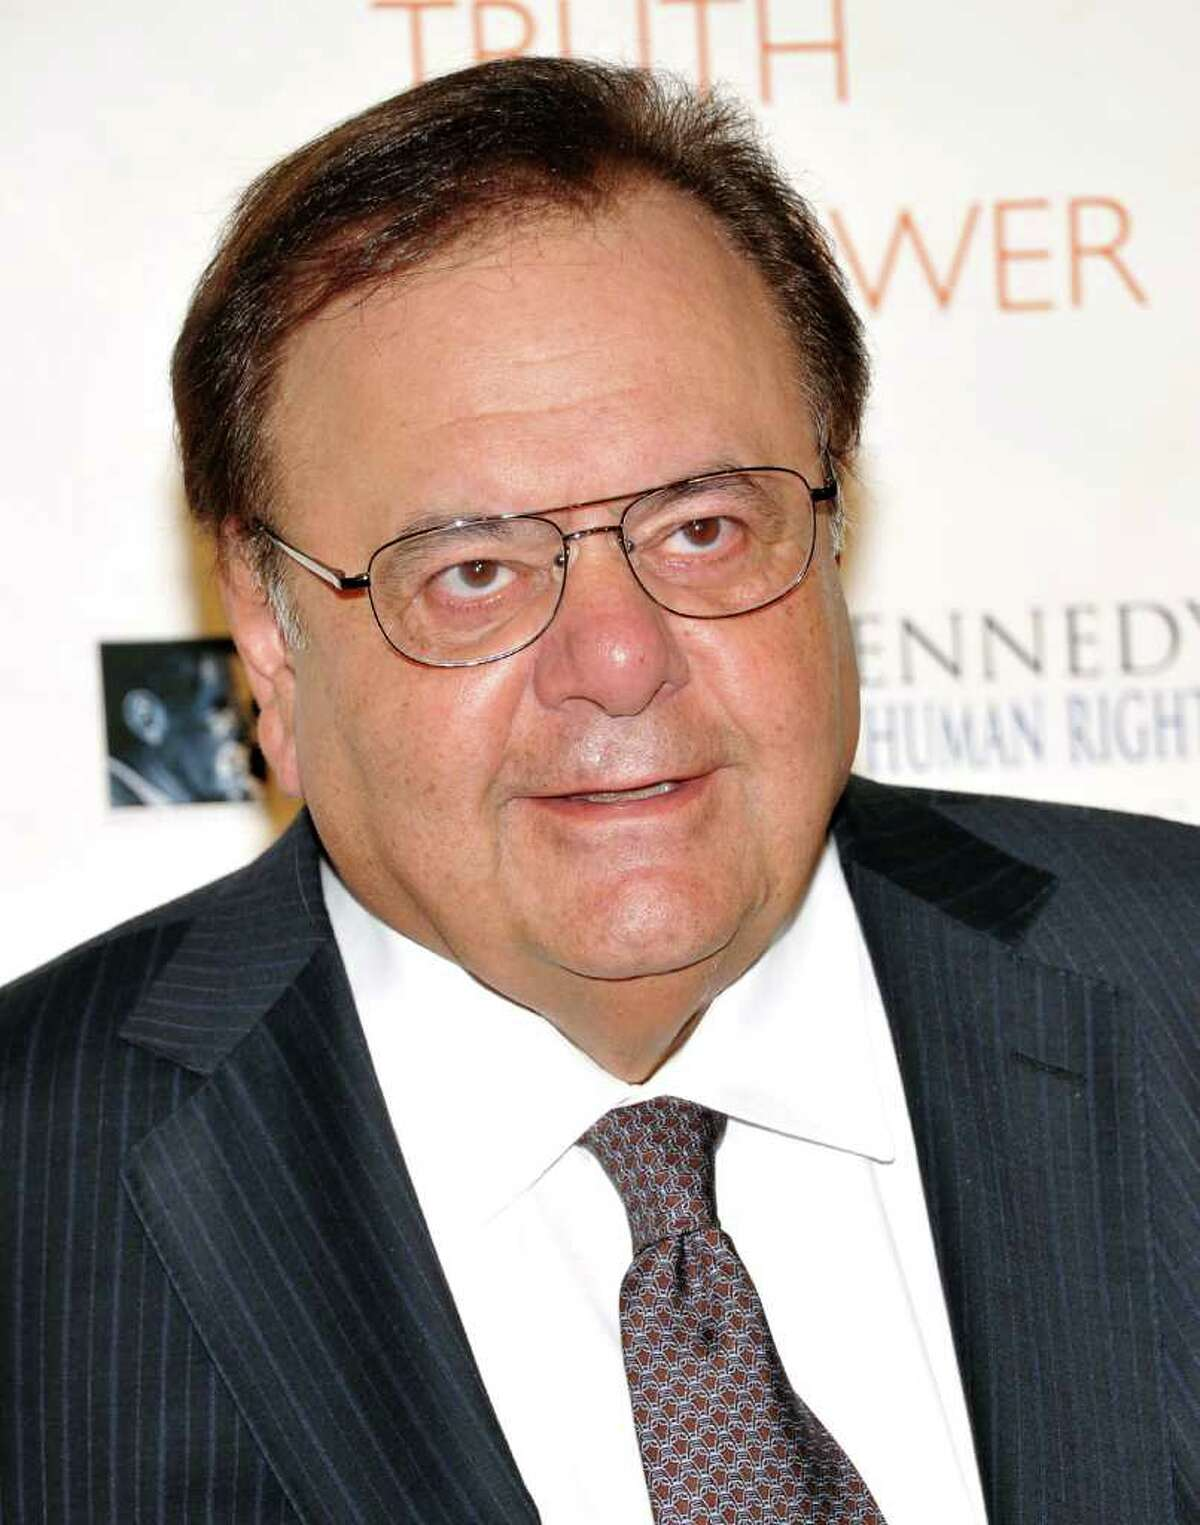 """This Nov. 17, 2010 photo shows actor Paul Sorvino at the the Robert F. Kennedy Center for Justice and Human Rights 2010 Ripple of Hope Awards Dinner at Pier Sixty in New York. Sorvino might finally be over his trouble with """"The Trouble with Cali."""" Armed with $500,000 in taxpayer funding, the first-time director and """"Goodfellas"""" star shot the independent film in northeastern Pennsylvania six years ago. But the project ran short of cash, and politicians in Scranton demanded to know what he did with their investment. Sorvino, in turn, was stunned and hurt that anyone would question his integrity. (AP Photo/Evan Agostini)"""